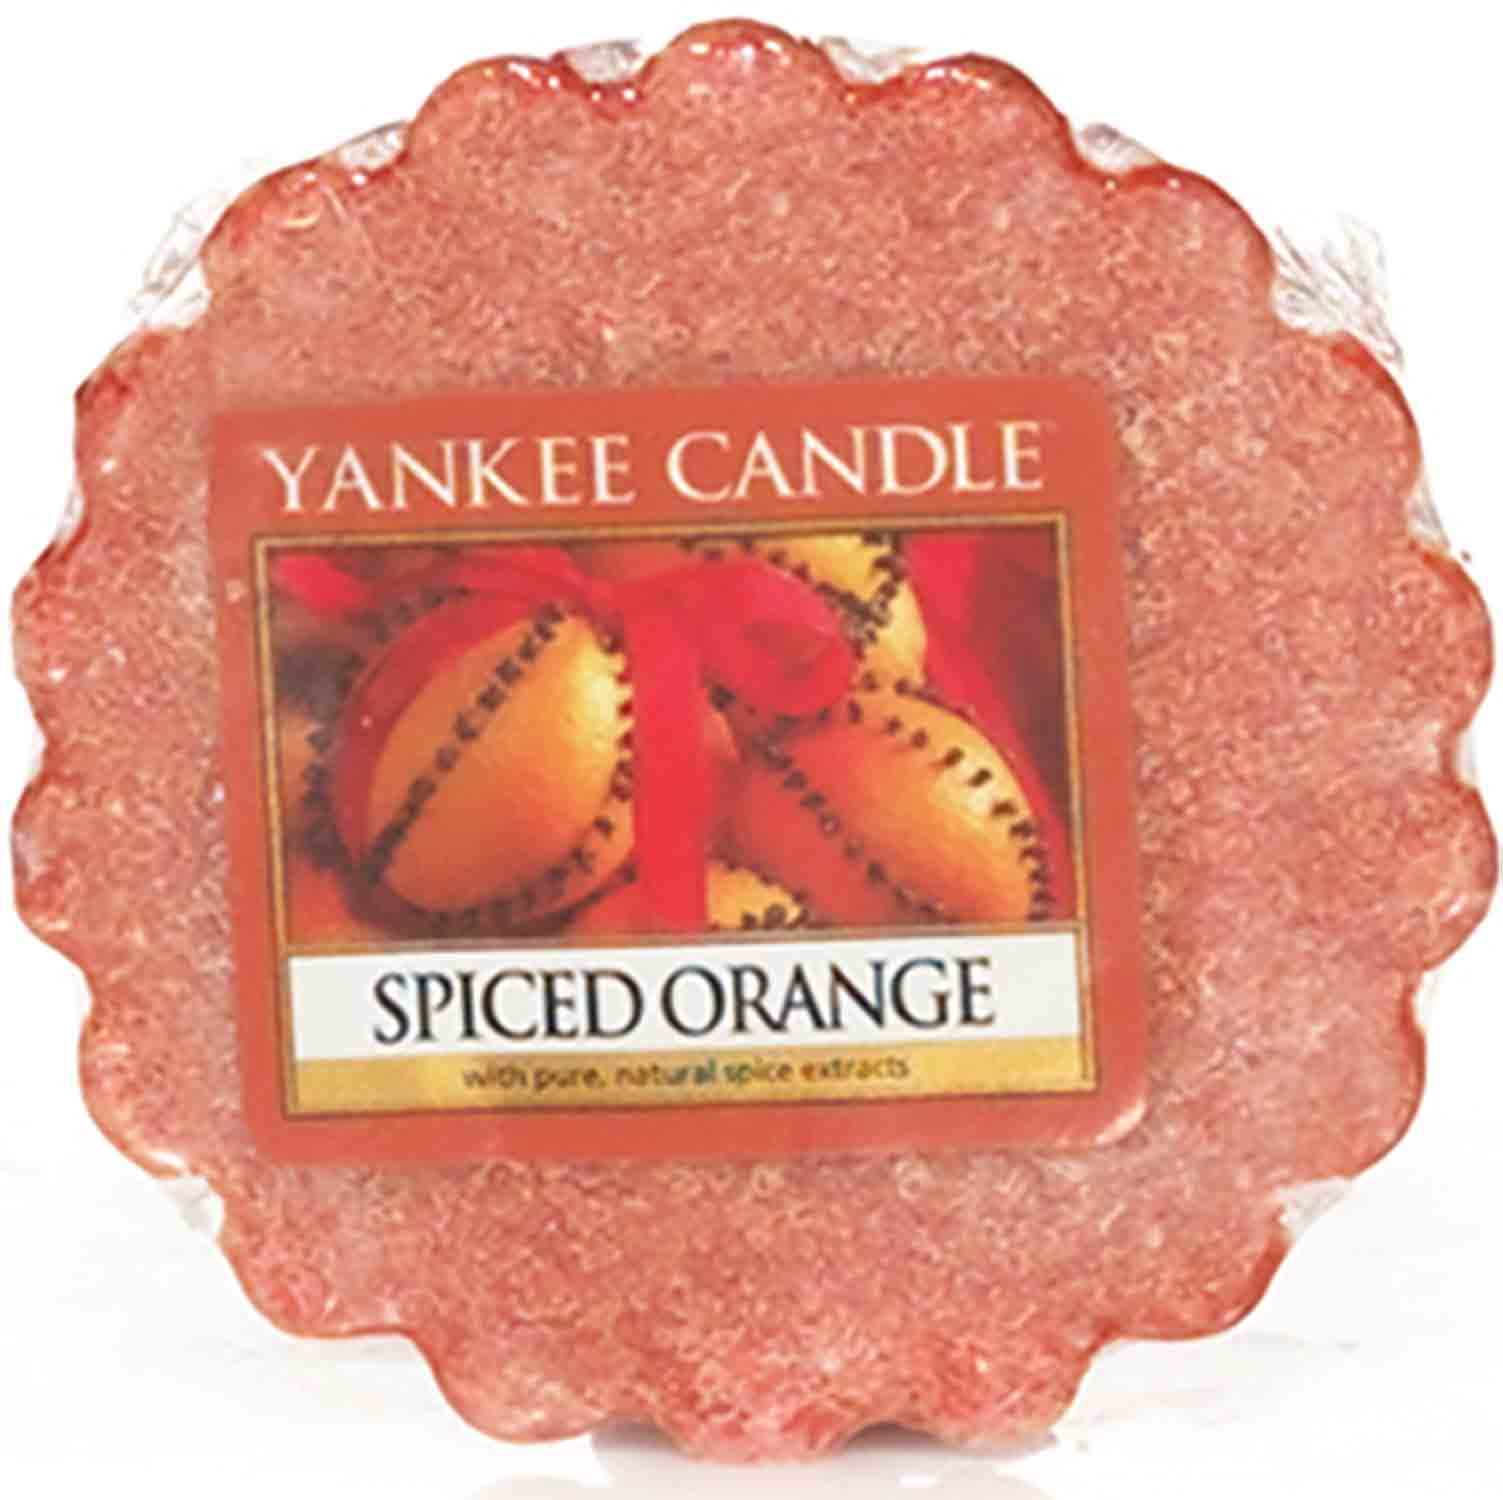 Vonný vosk Yankee Candle Spiced Orange 22g